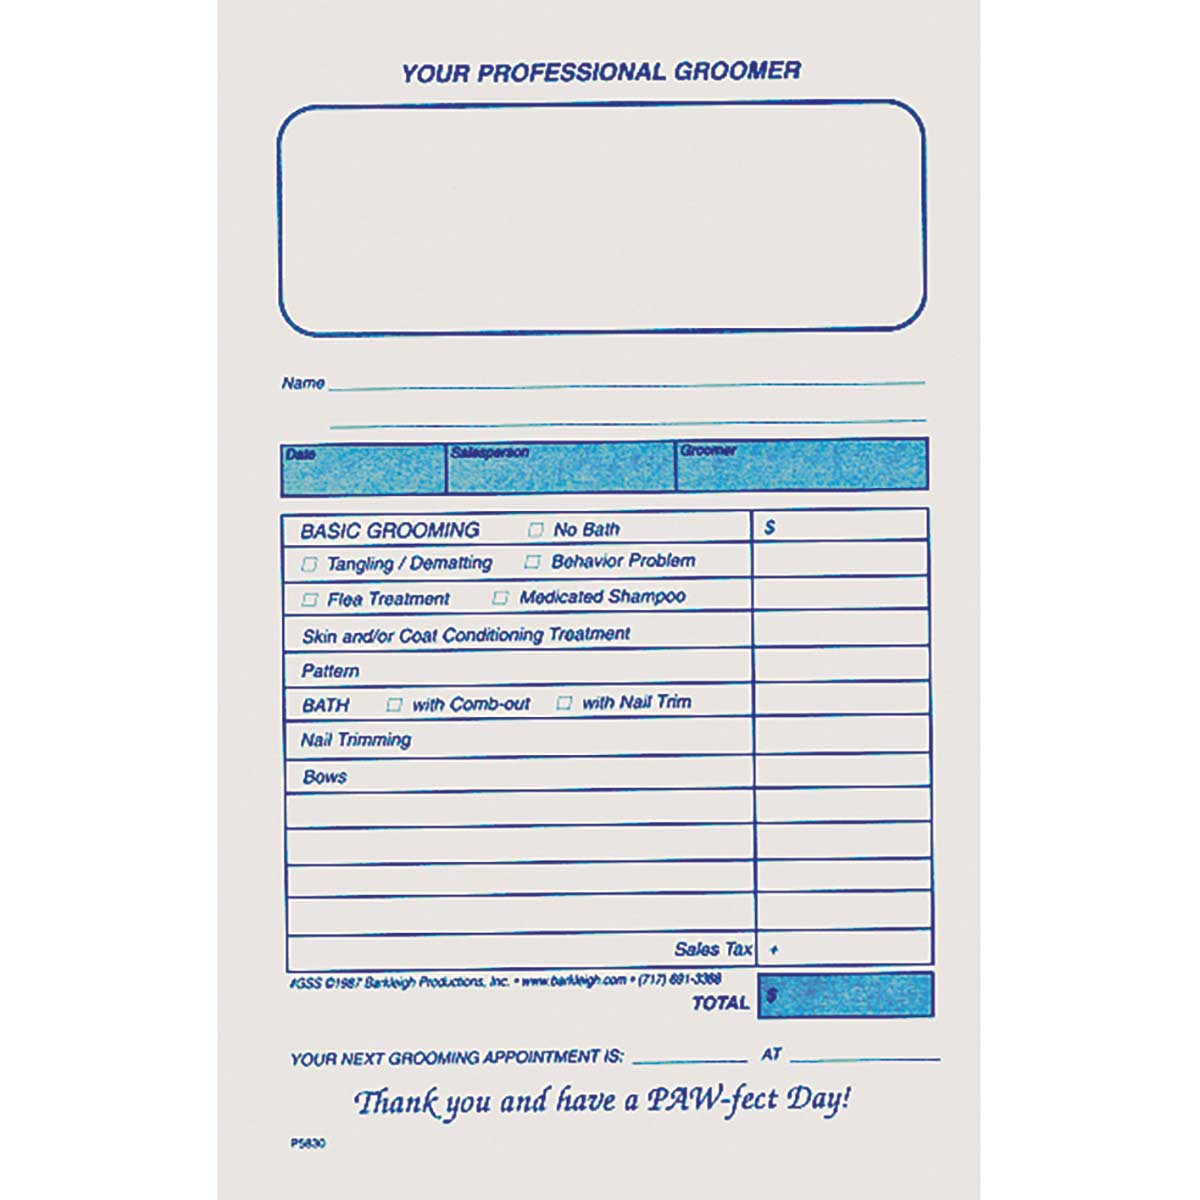 Barkleigh Groomer Sales Slips - 100 Count for Professional Groomers